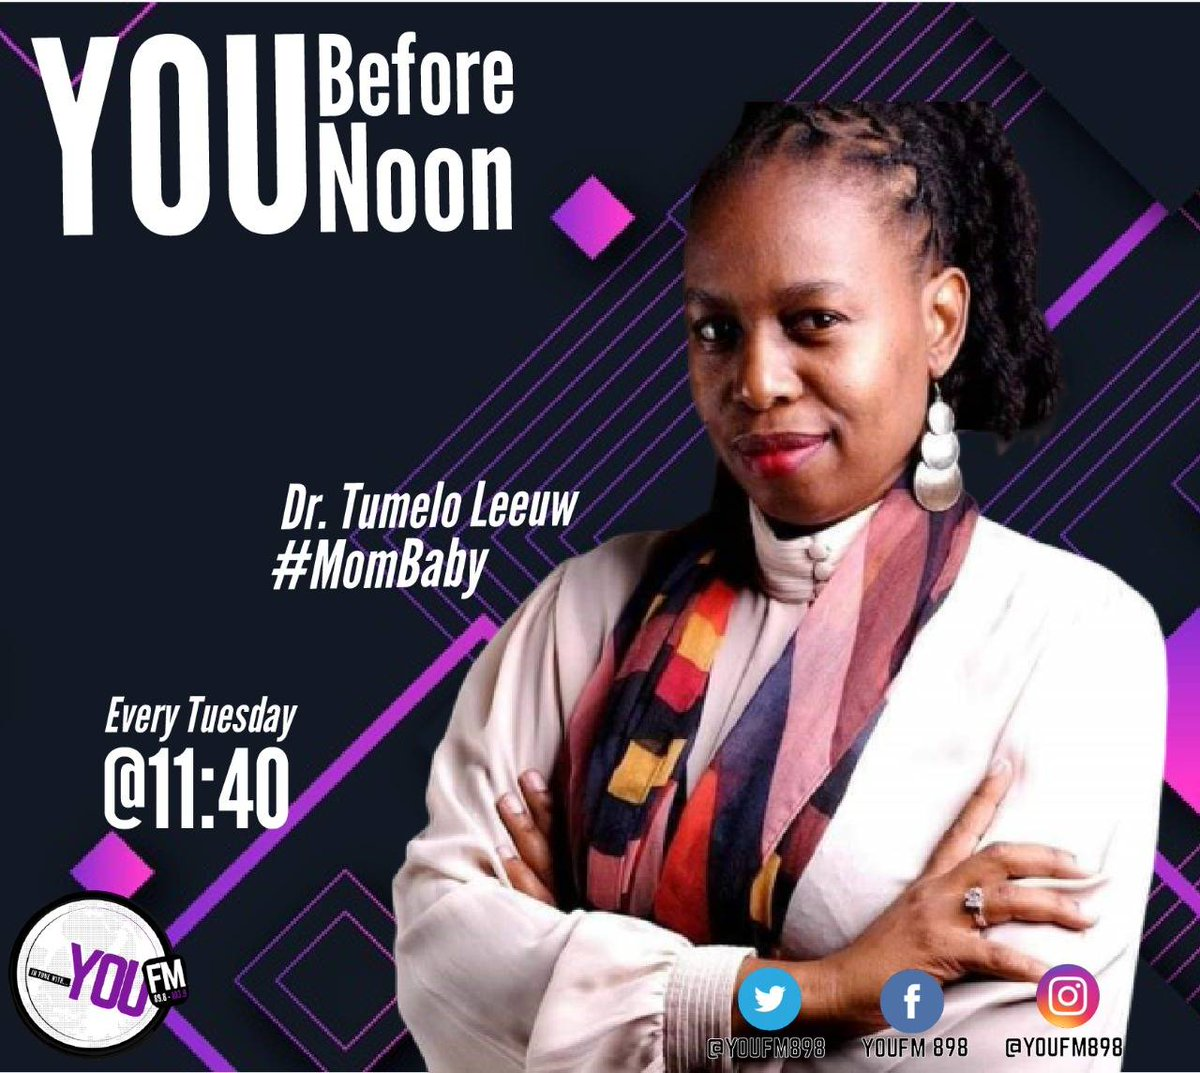 Take a small step everyday to teach your children about living a healthy lifestyle #MomBaby  Tune in as Dr Tumelo Leeuw schools us with @BeestingBonolo on #YouBeforeNoon  DSTV Channel 842  #CelebratingYOU #YOUInspireUs